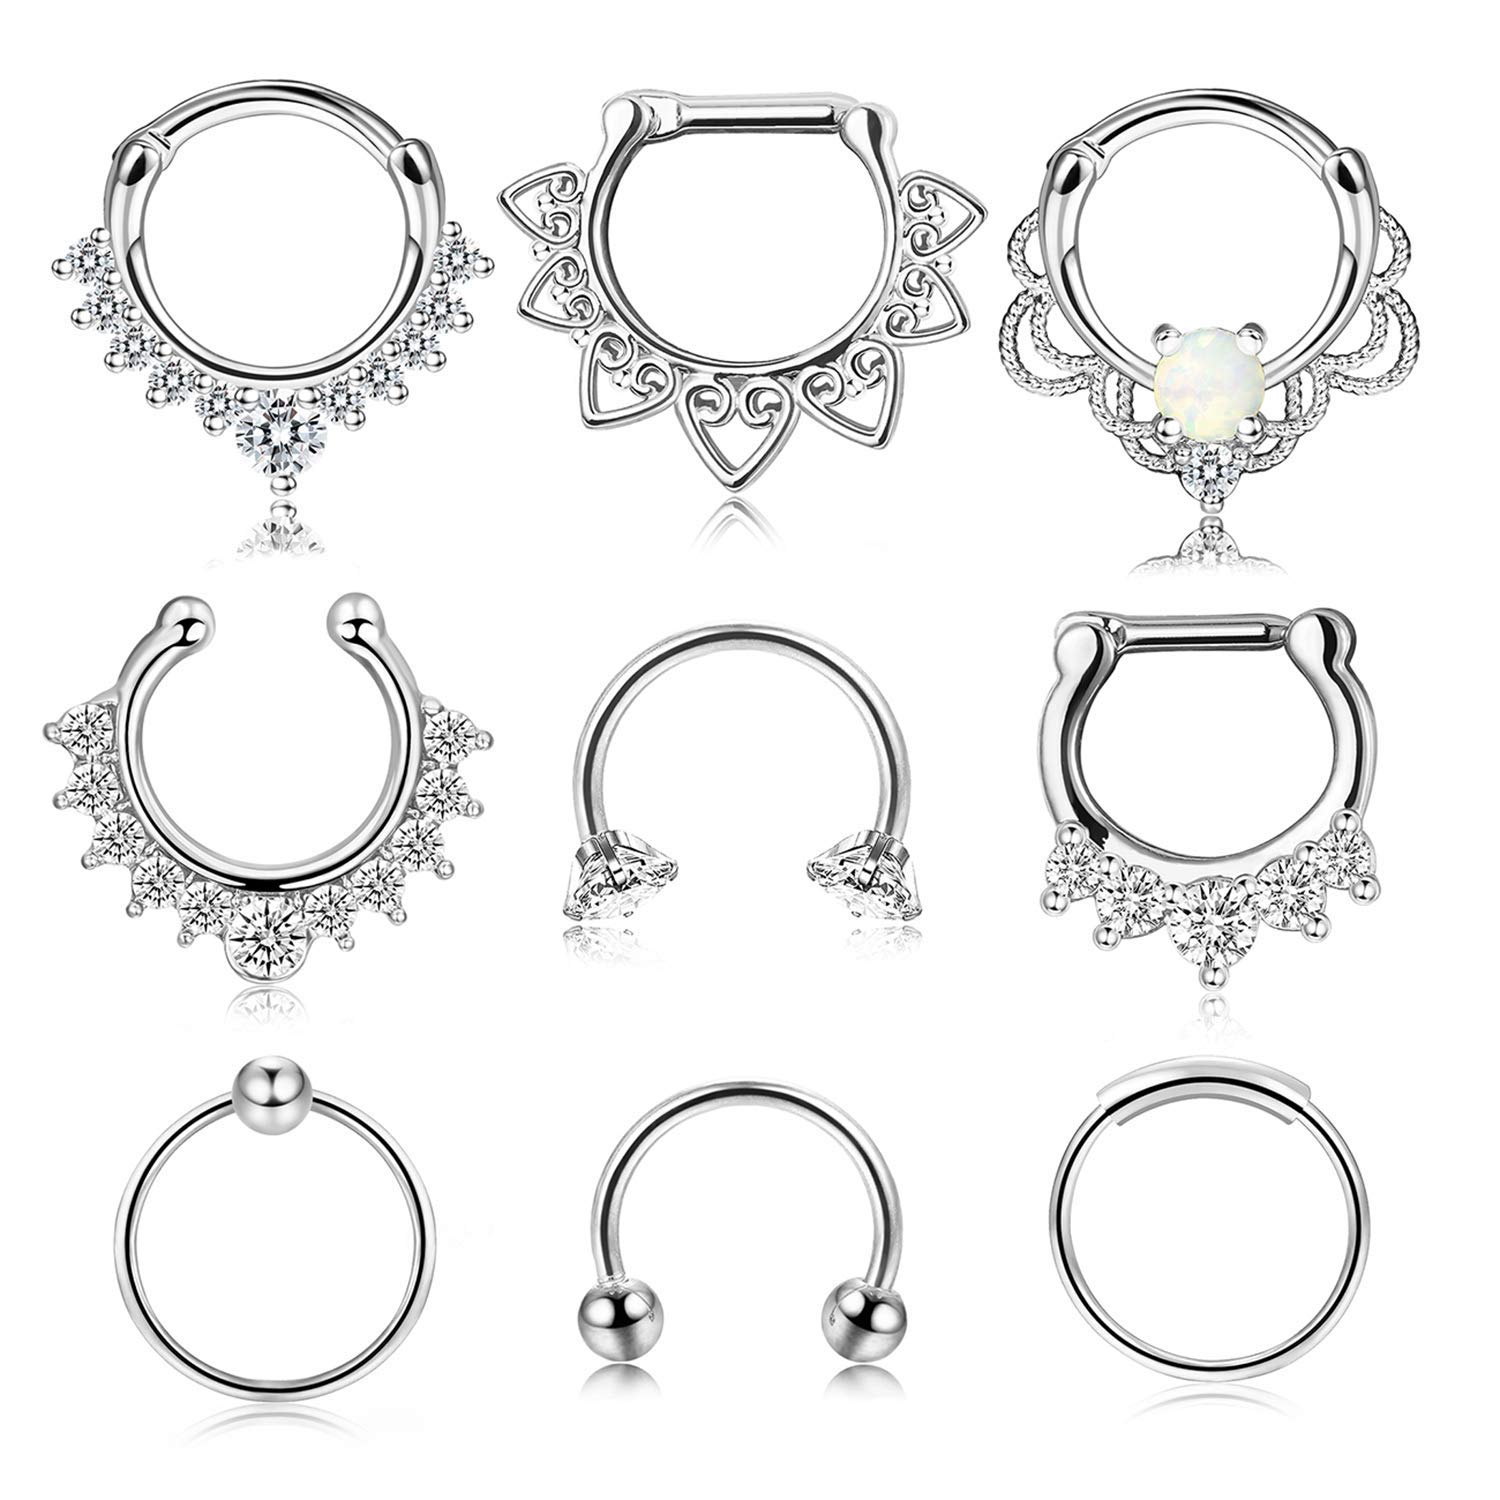 Udalyn 9 Pcs Stainless Steel Septum Hoop Nose Rings Cartilage Rings Clicker CZ Body Piercing Jewelry by Udalyn